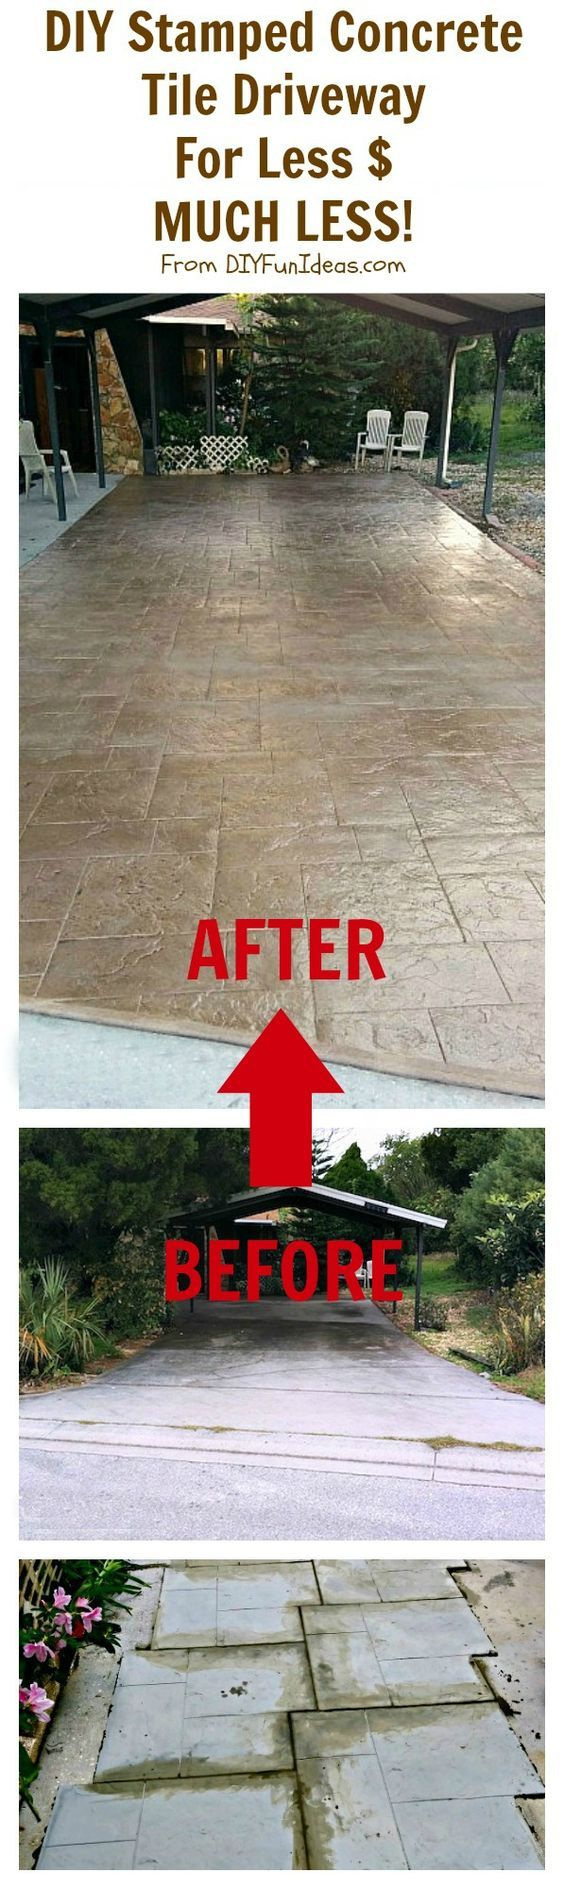 DIY STAMPED CONCRETE TILE DRIVEWAY FOR LESS $...MUCH LESS!!!  Great for patios & decks too! Even a novice can do this.: